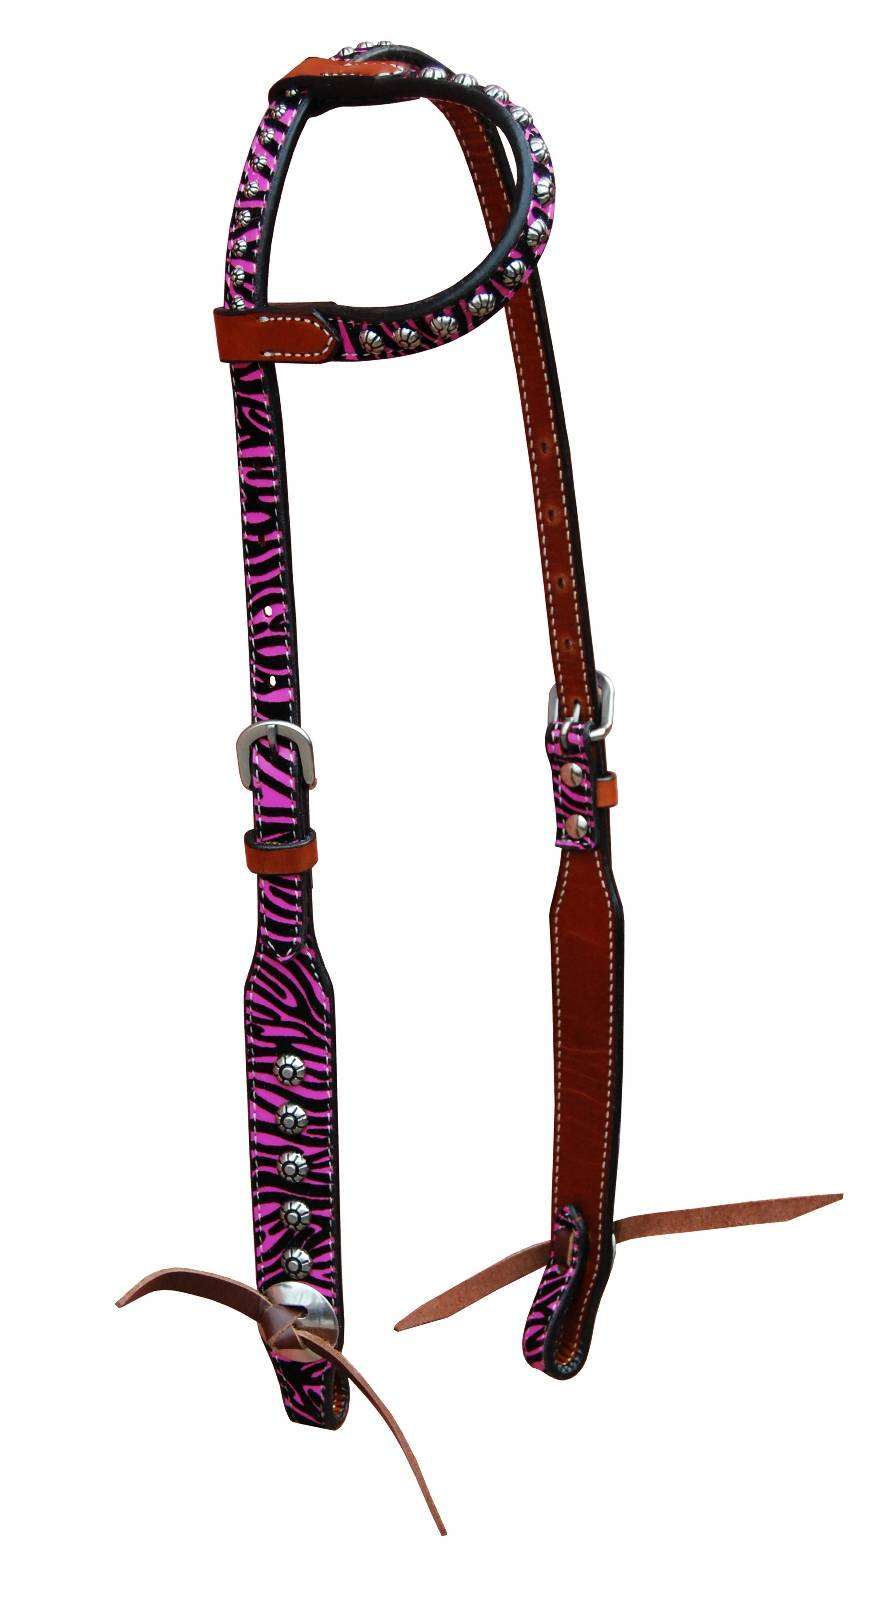 Turn-Two Equine Chasing Wild One Ear Headstall